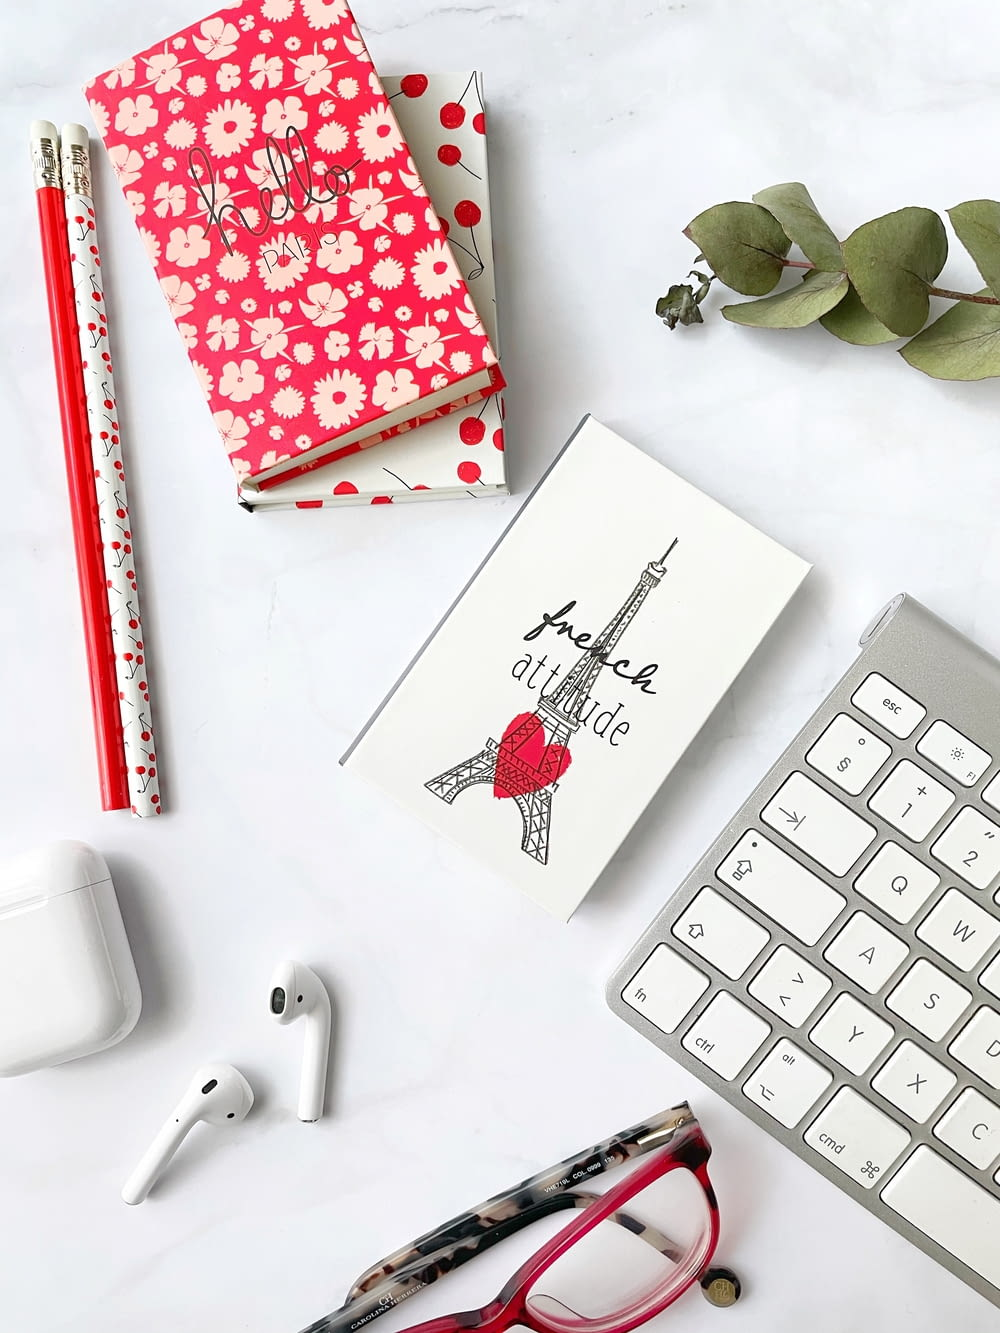 white and red heart card beside white computer keyboard